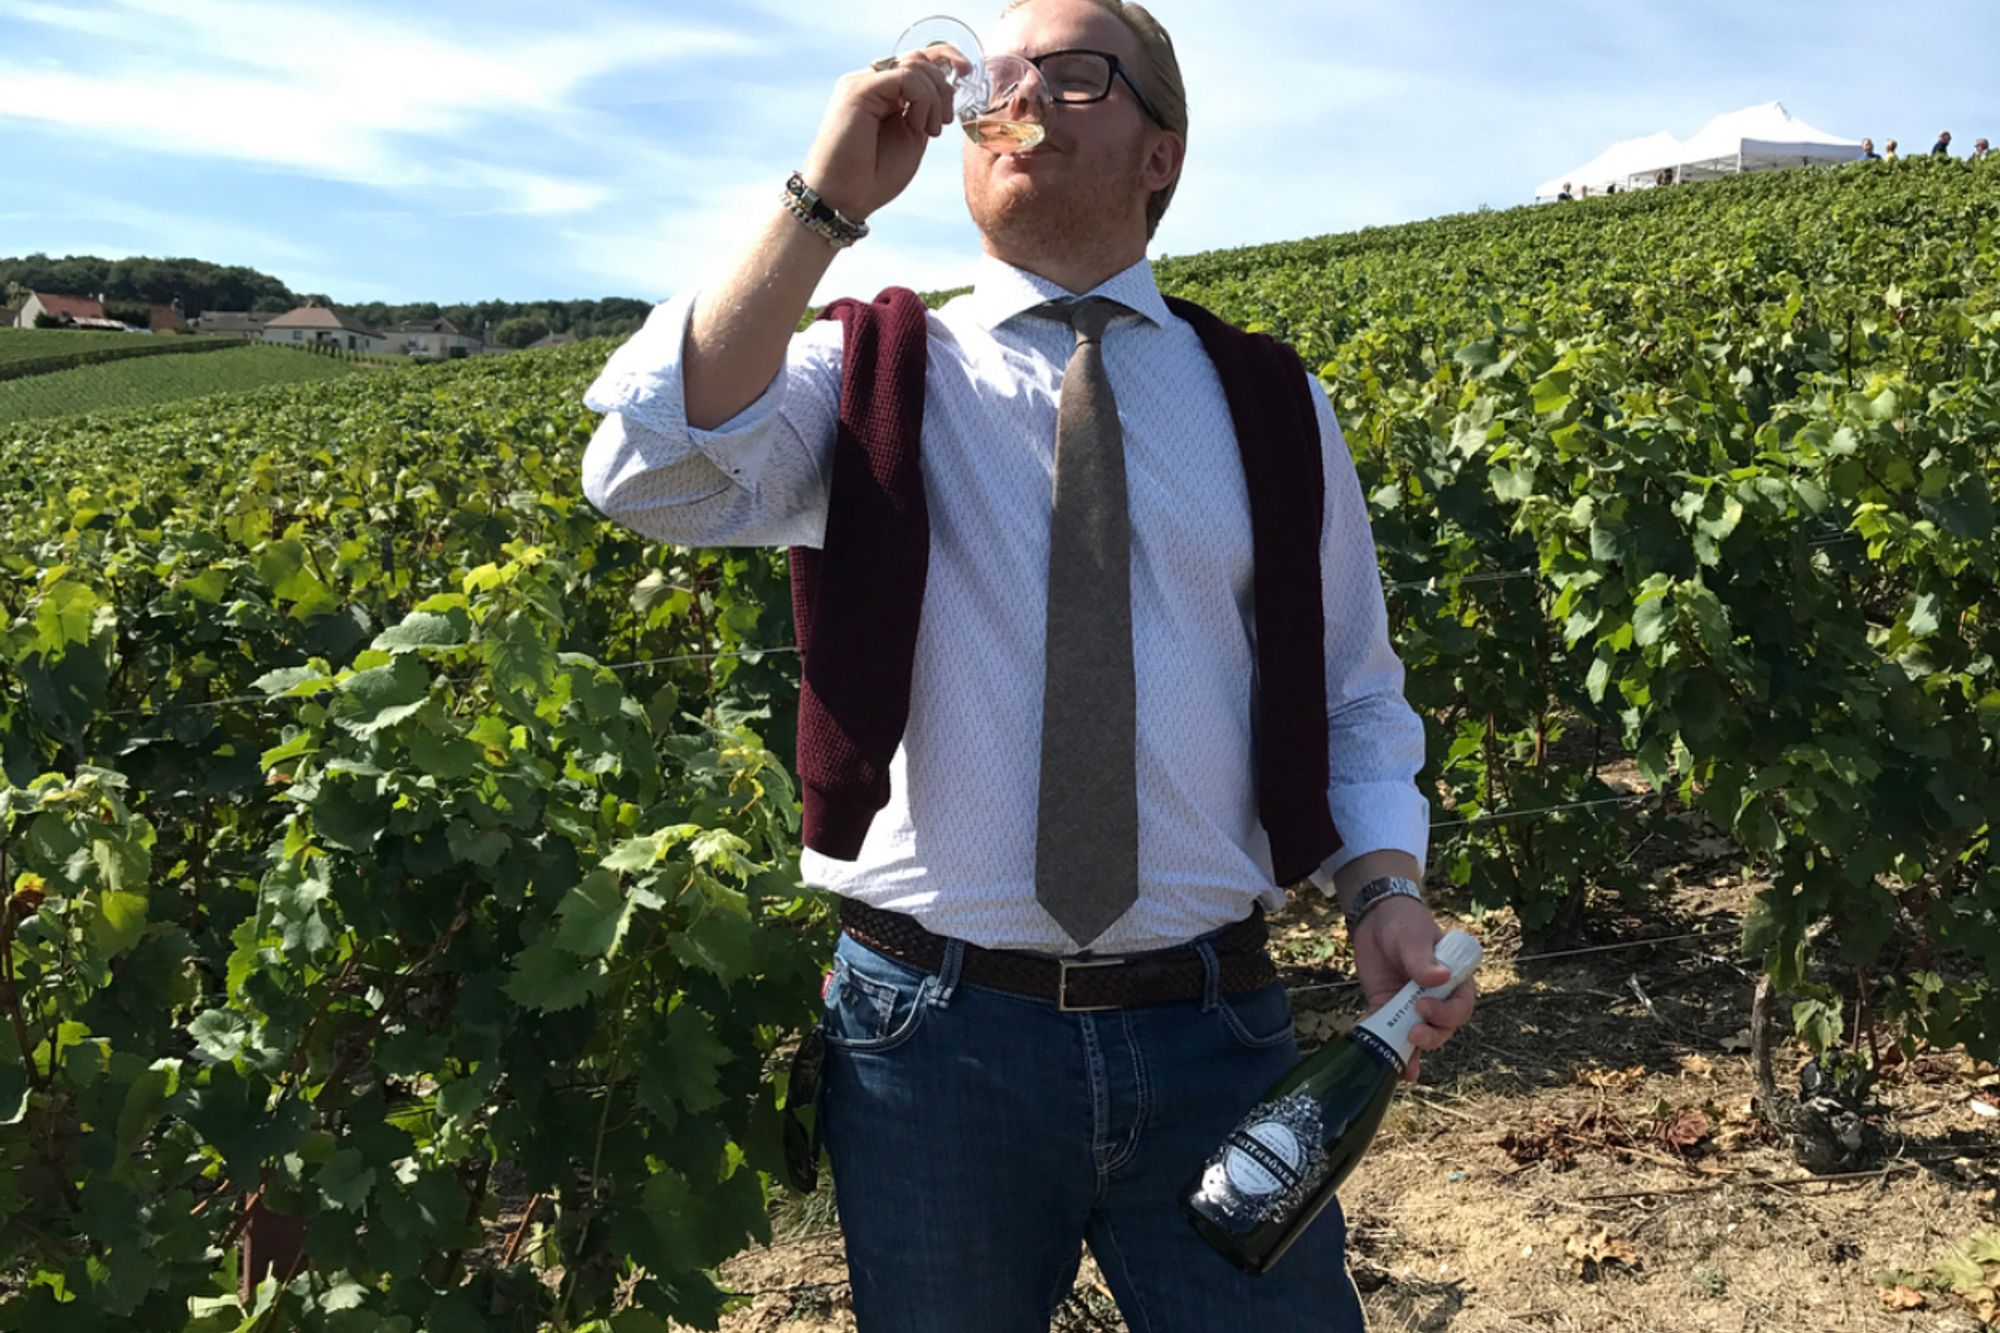 EXPANSION NEWS! Local Wine Connoisseur joins board of Directors